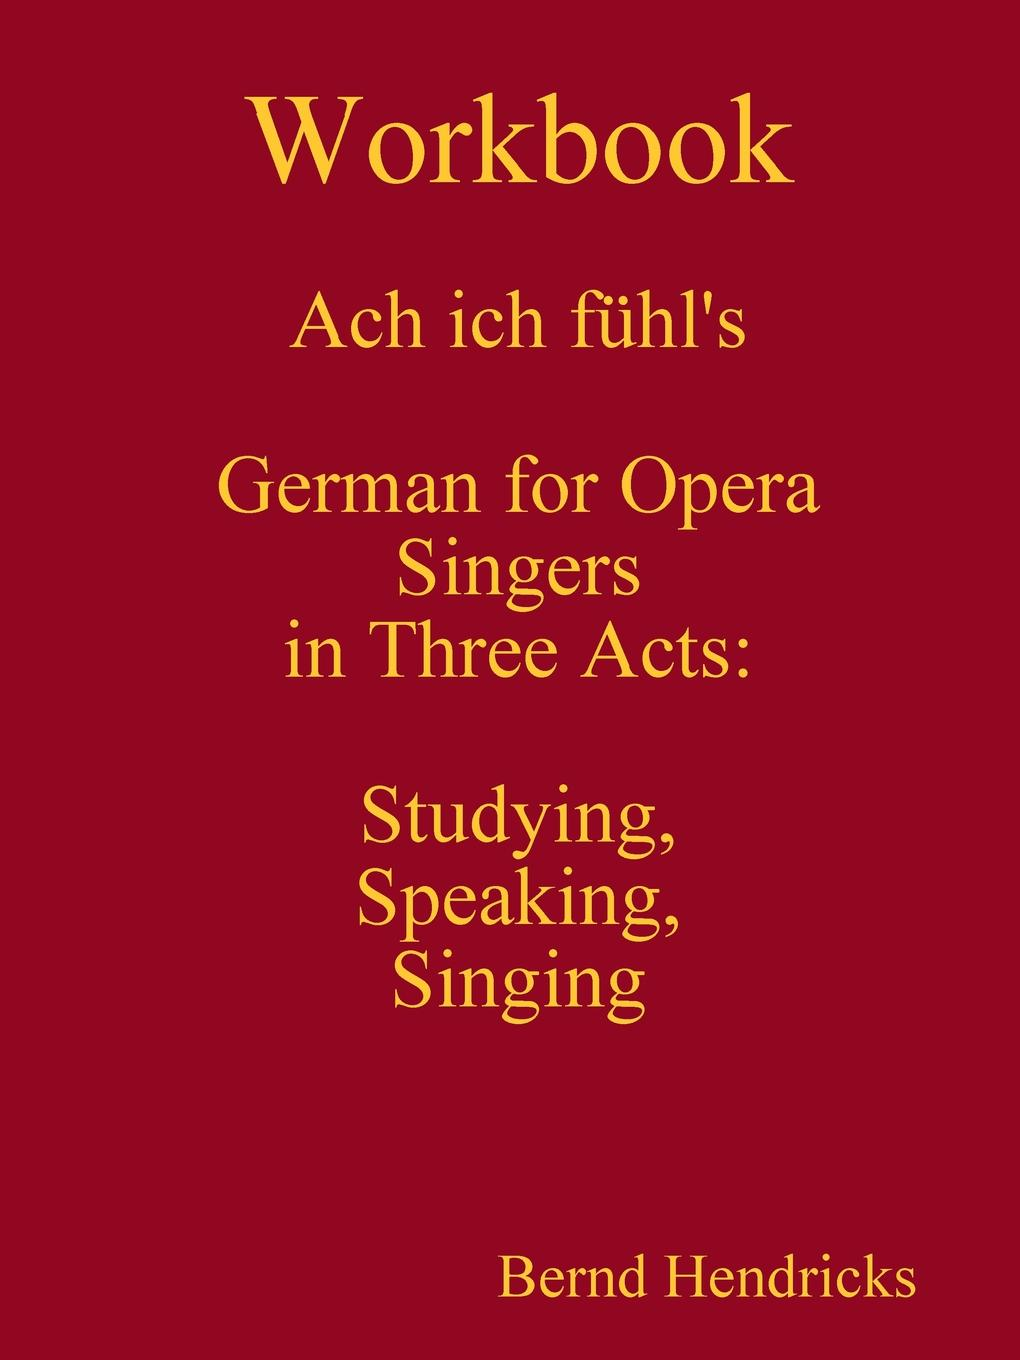 Фото - Bernd Hendricks Workbook Ach ich fuhl.s - German for Opera Singers in Three Acts. Studying, Speaking, Singing agent based snort in distributed environment